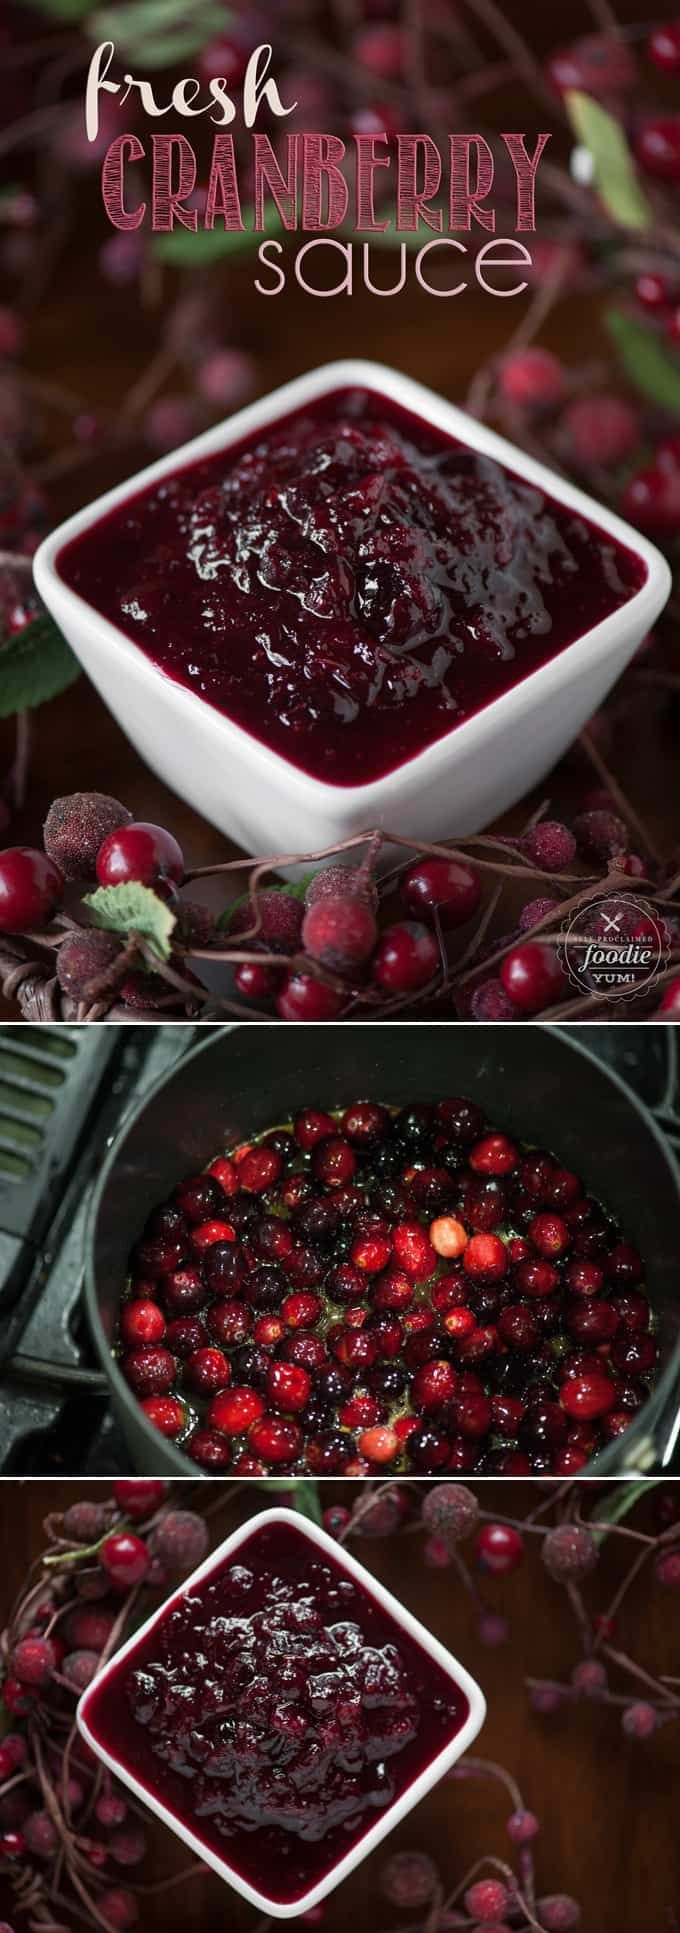 Fresh Homemade Cranberry Sauce Recipe | Self Proclaimed Foodie